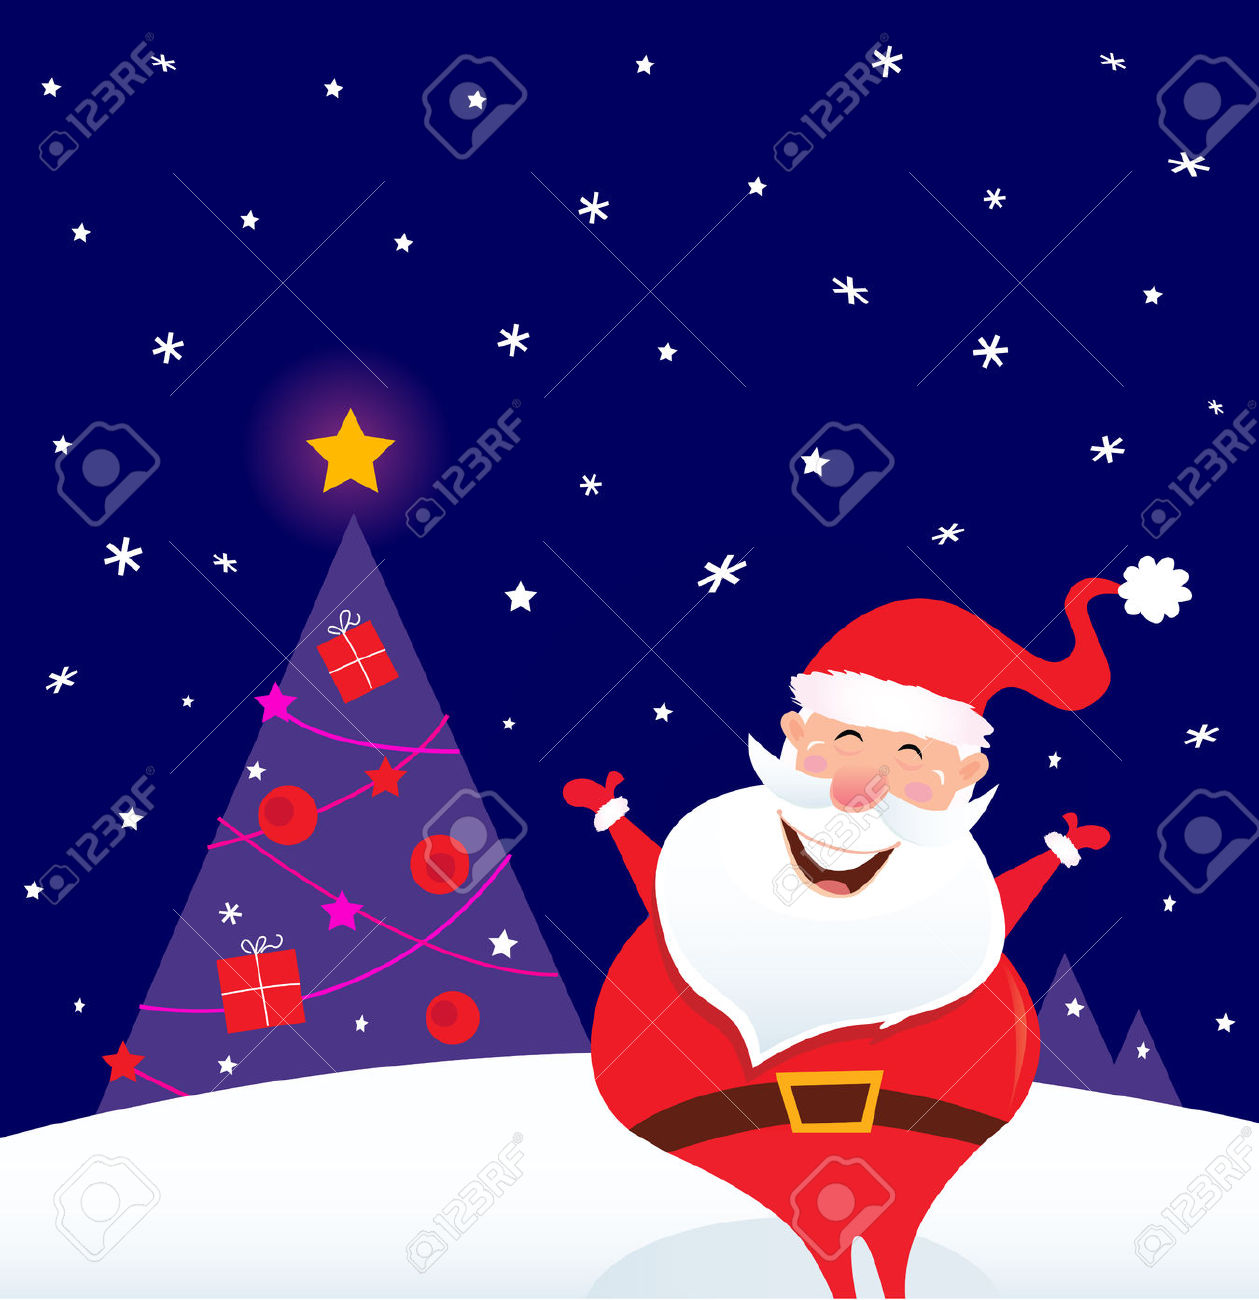 Clipart of christmas tree falling over clipground